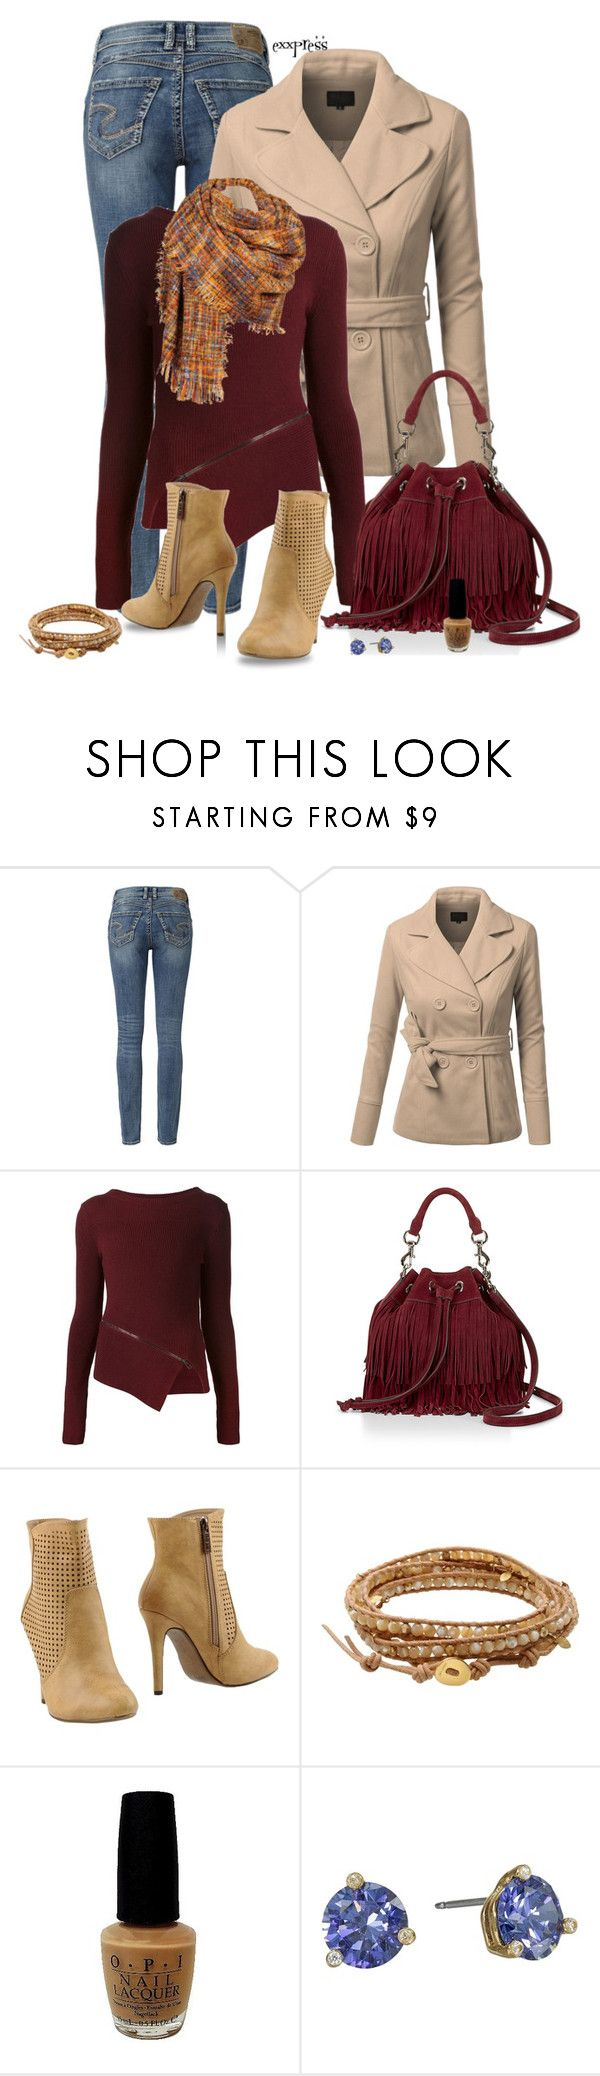 """""""And Oxblood all Over"""" by exxpress ❤ liked on Polyvore featuring Silver Jeans Co., J.TOMSON, Belstaff, Rebecca Minkoff, Trendy Too, Chan Luu, OPI, Kate Spade, oxblood and outfitonly"""